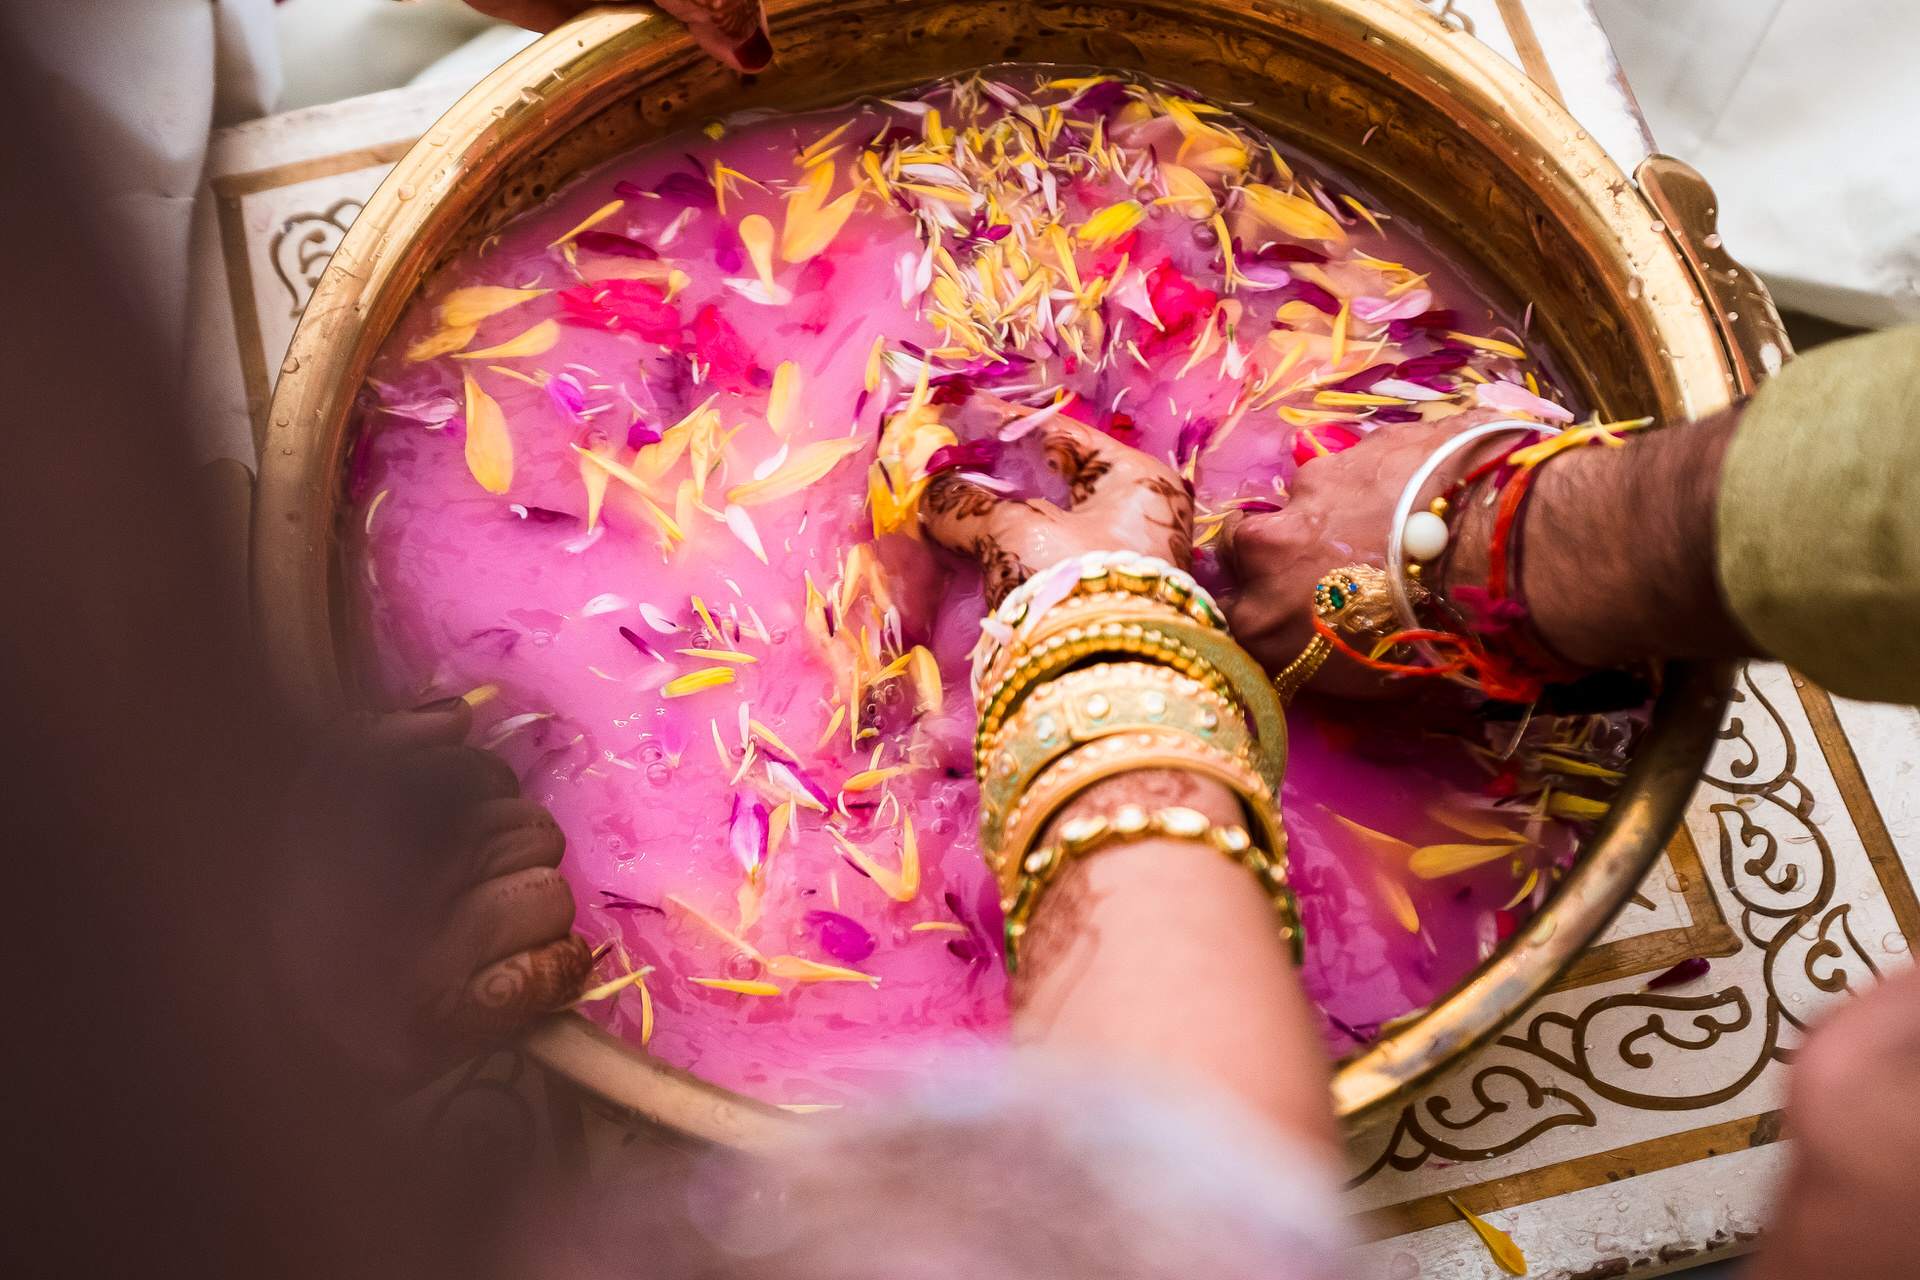 Indian Elopement Photographer for London UK | the bride or groom's wedding band is placed in a bowl filled with rose milk